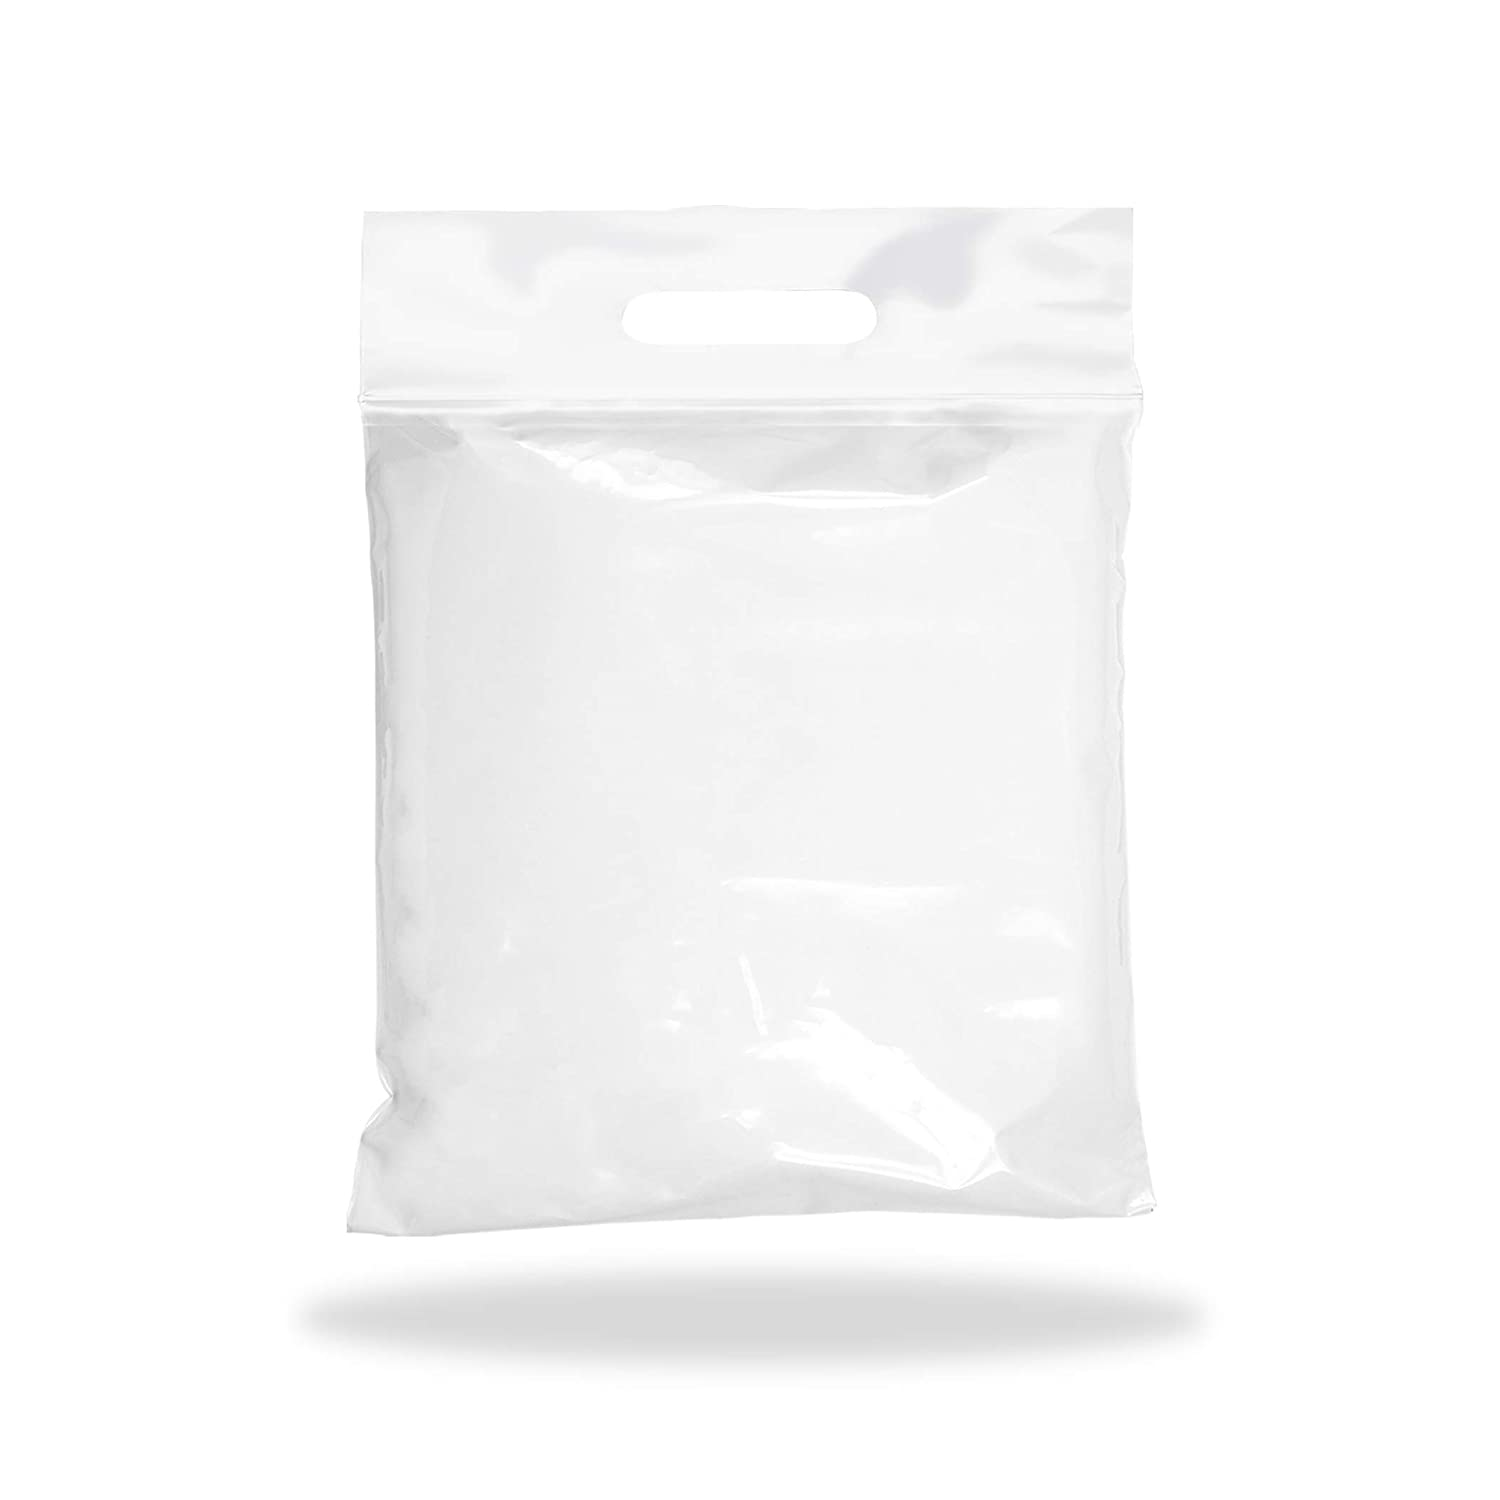 APQ Pack of 50 Die Cut Zip Lock Bags 13 x 15. Lock Top Handle Polyethylene Bags 13x15. Thickness 3 Mil. Reclosable Storage Bags. 3 inch Lip. Zipper Locking Poly Plastic Bags for Goods.